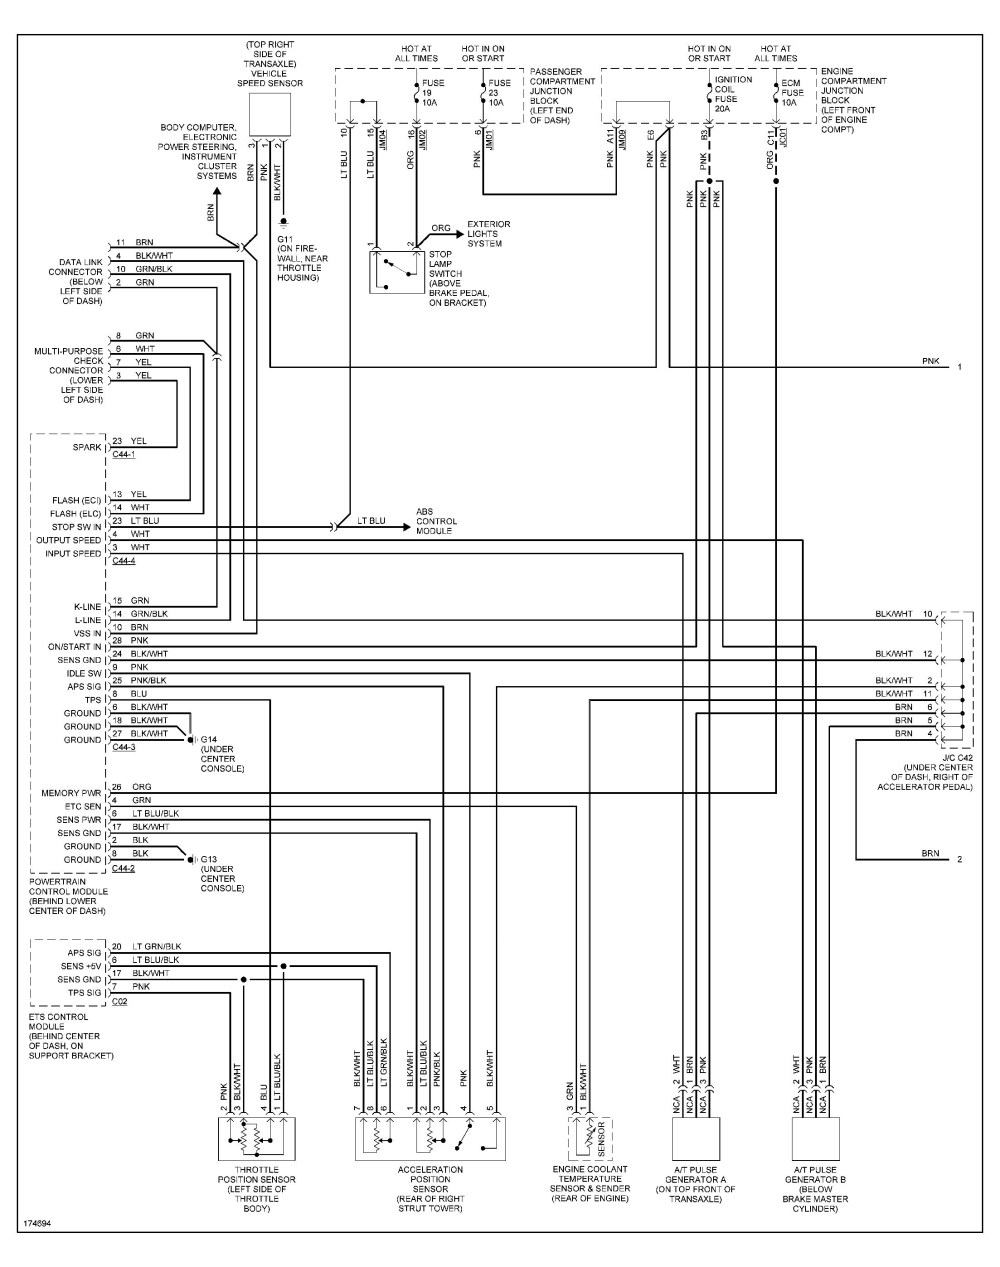 medium resolution of 2004 3 5l hyundai engine diagram data diagram schematic 2004 3 5l hyundai engine diagram